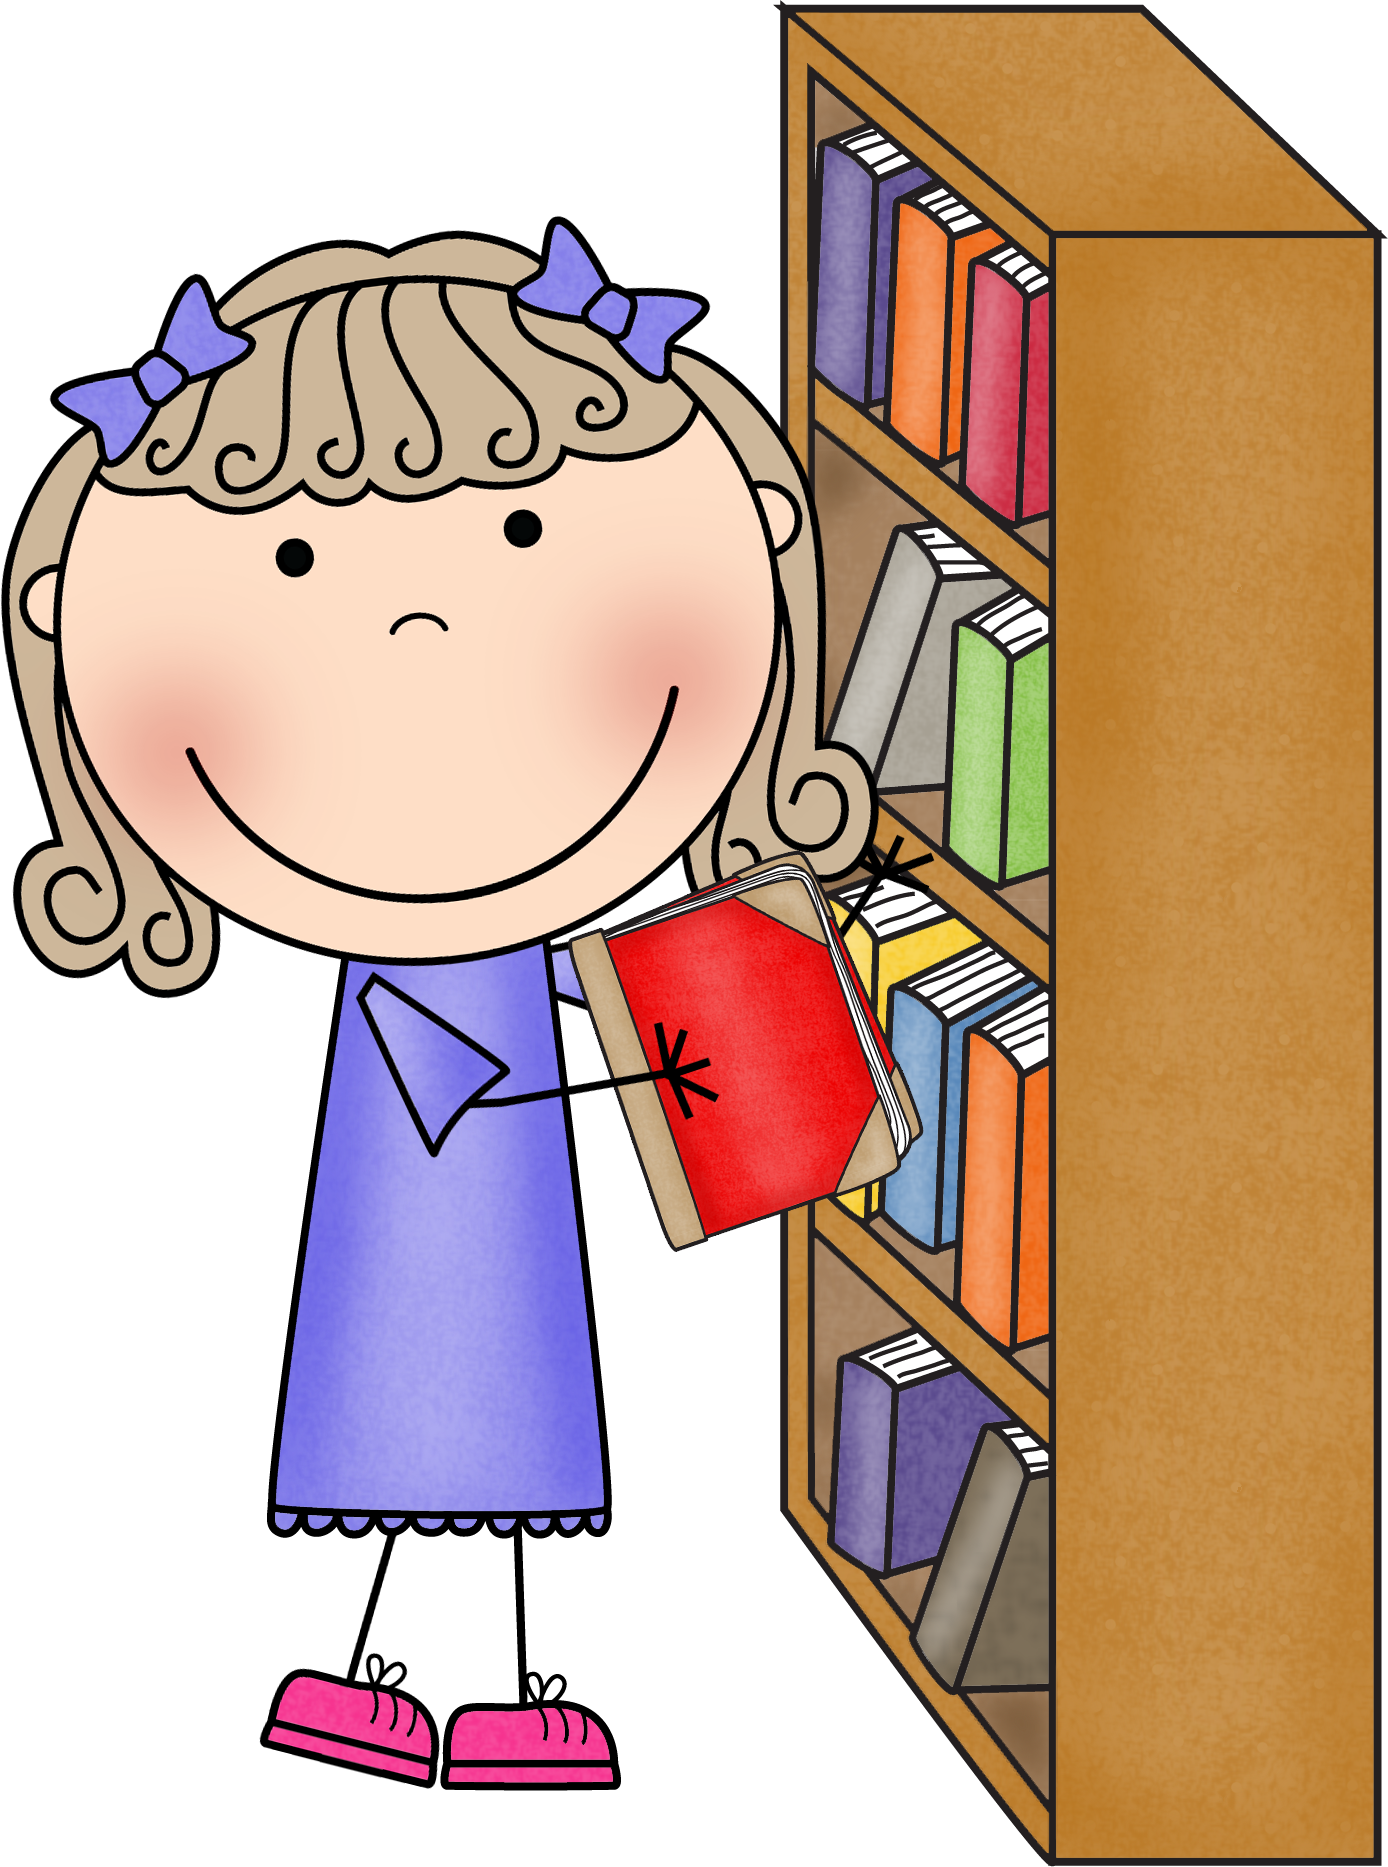 School library clipart image royalty free library Teacher helper clipart - ClipartFest image royalty free library